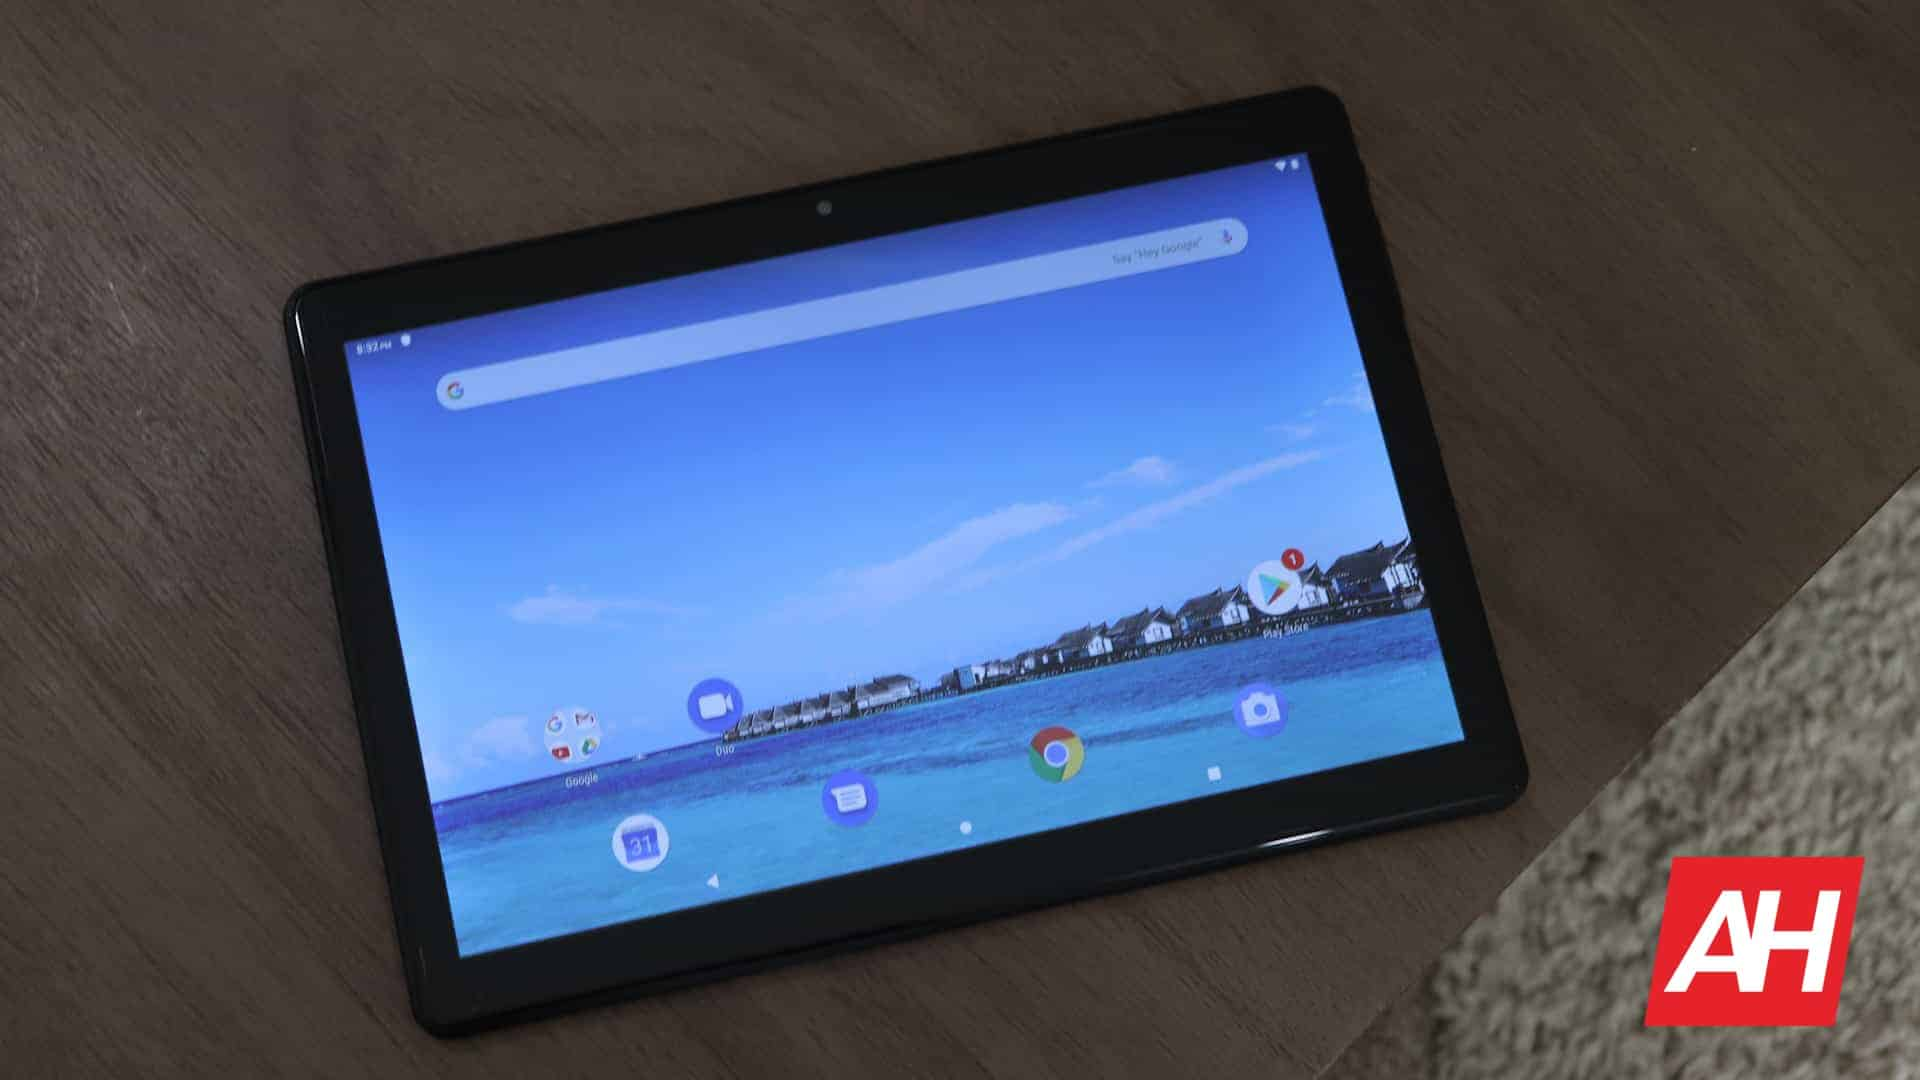 01 6 Dragon Touch Max 10 Tablet Review Hardware AH 2020